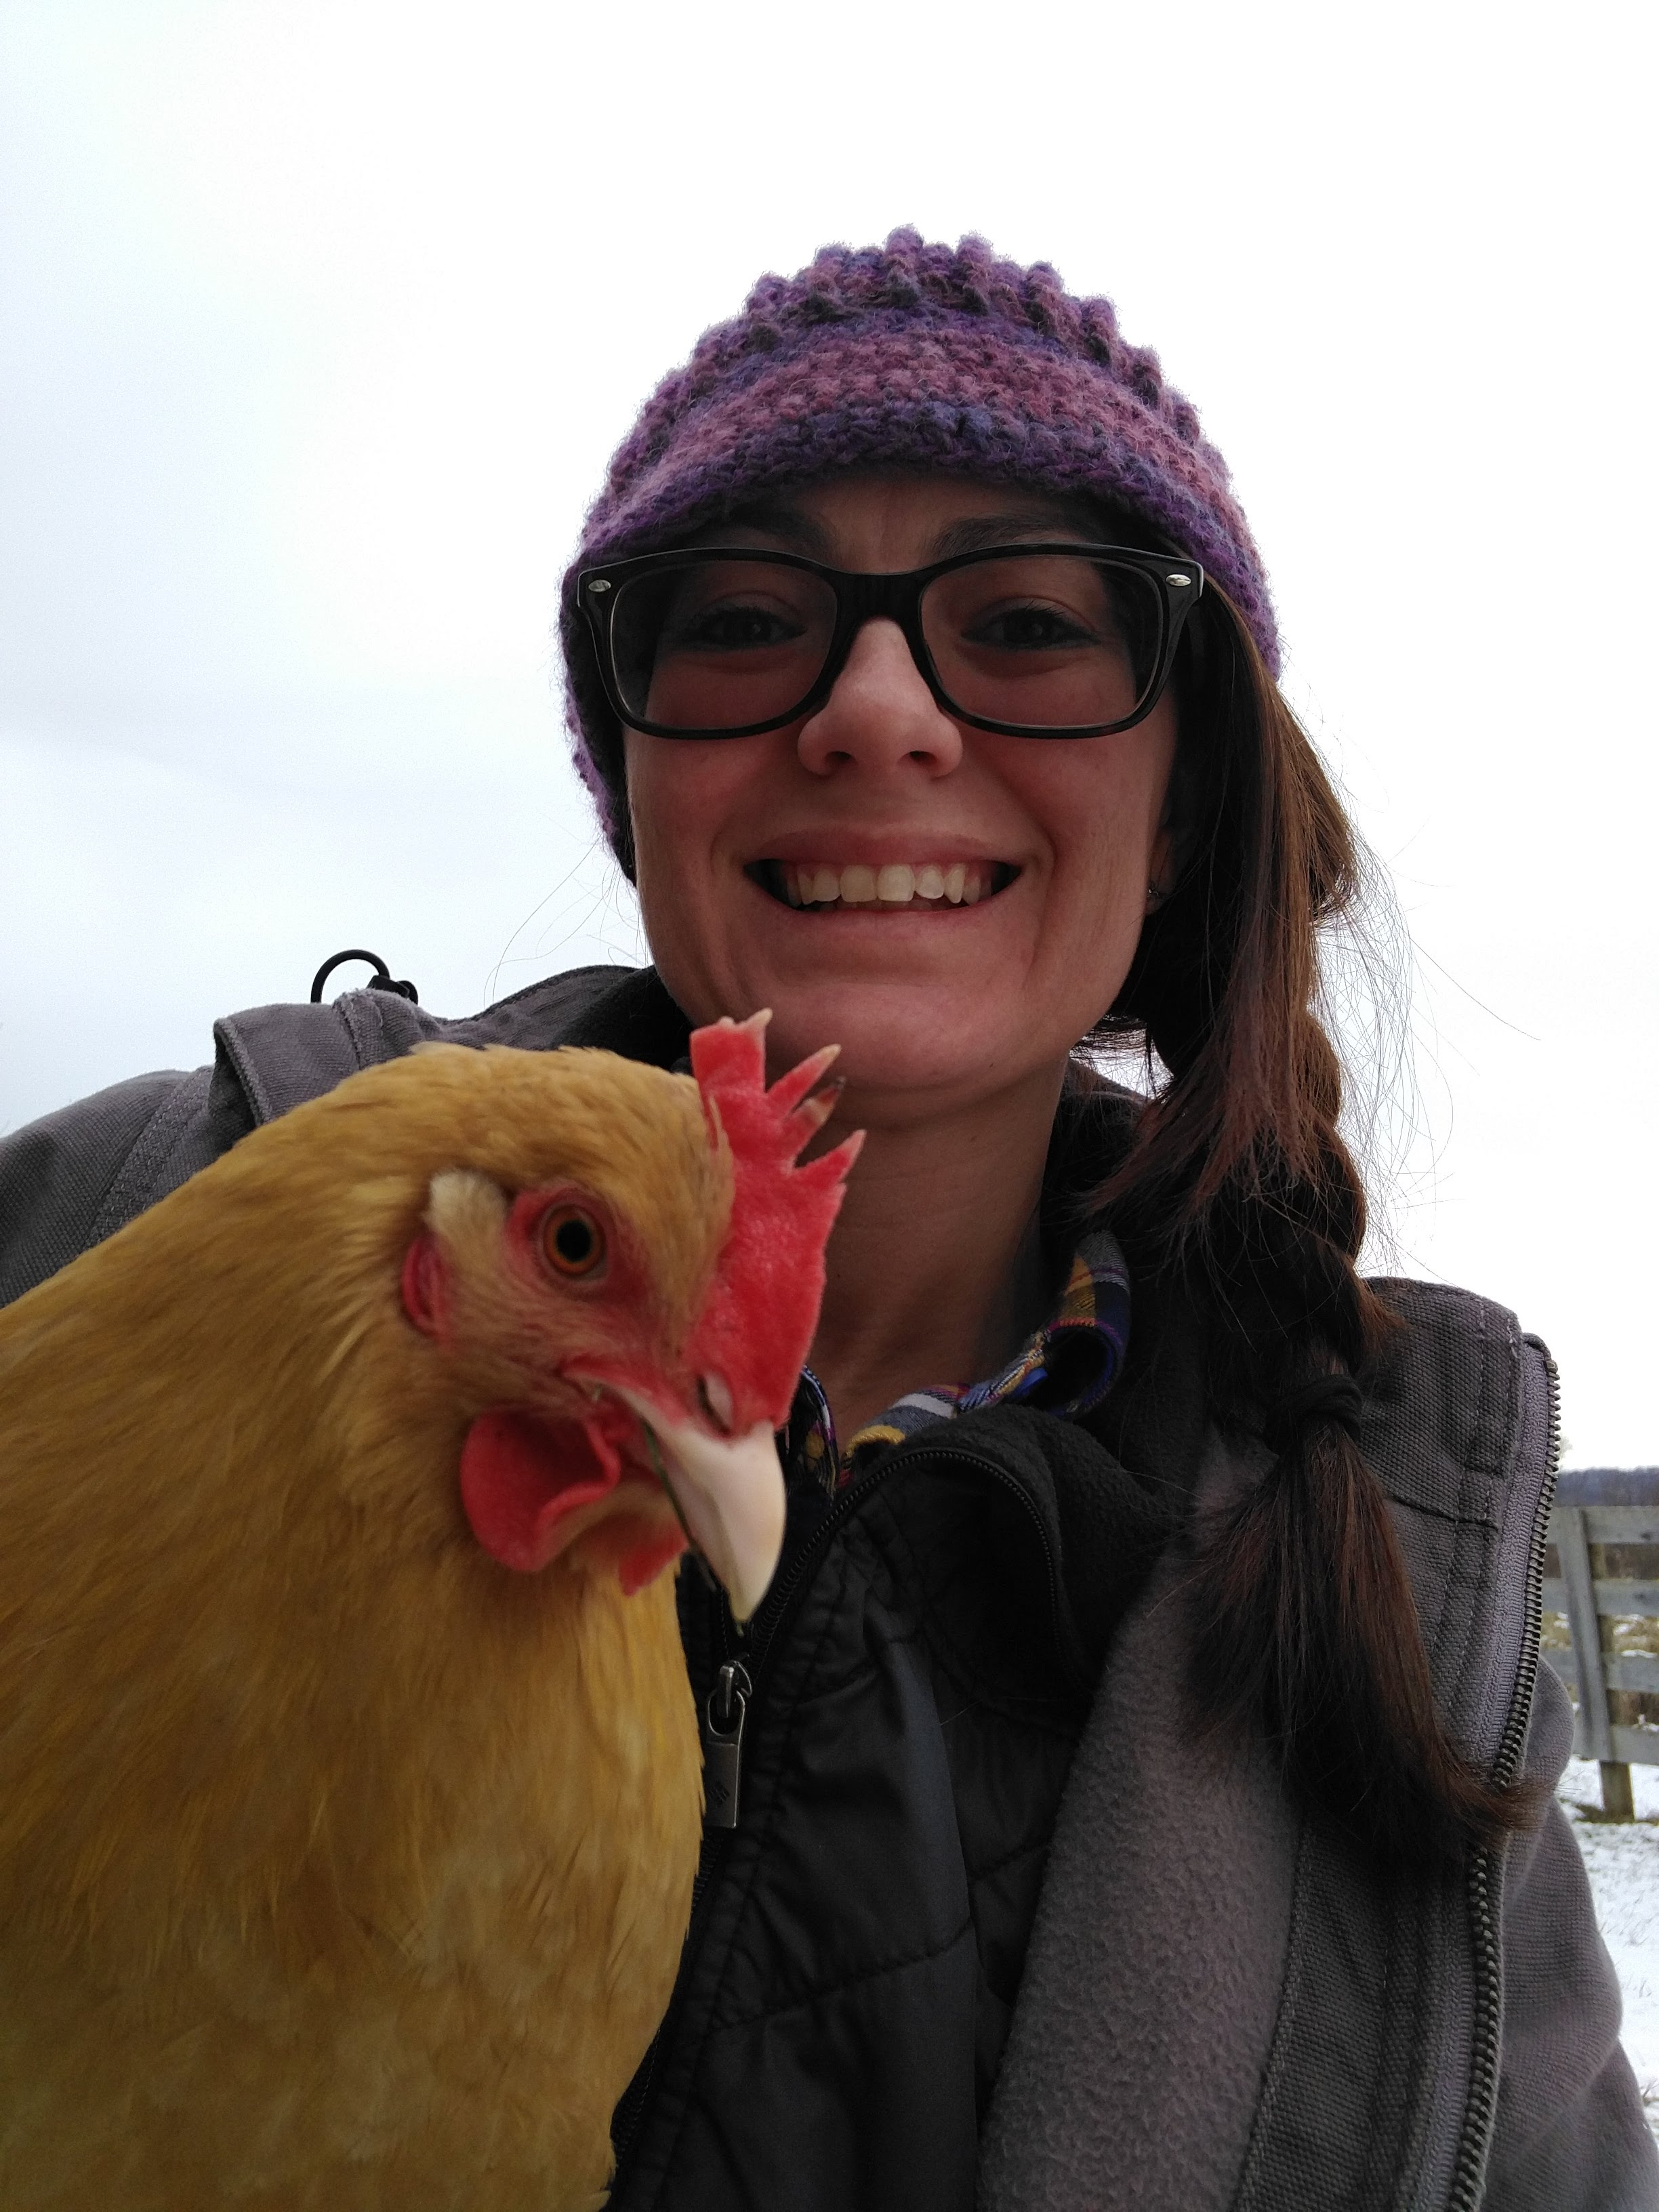 The selfie I discovered the frostbite in. How did I miss that during regular chicken care duties?!